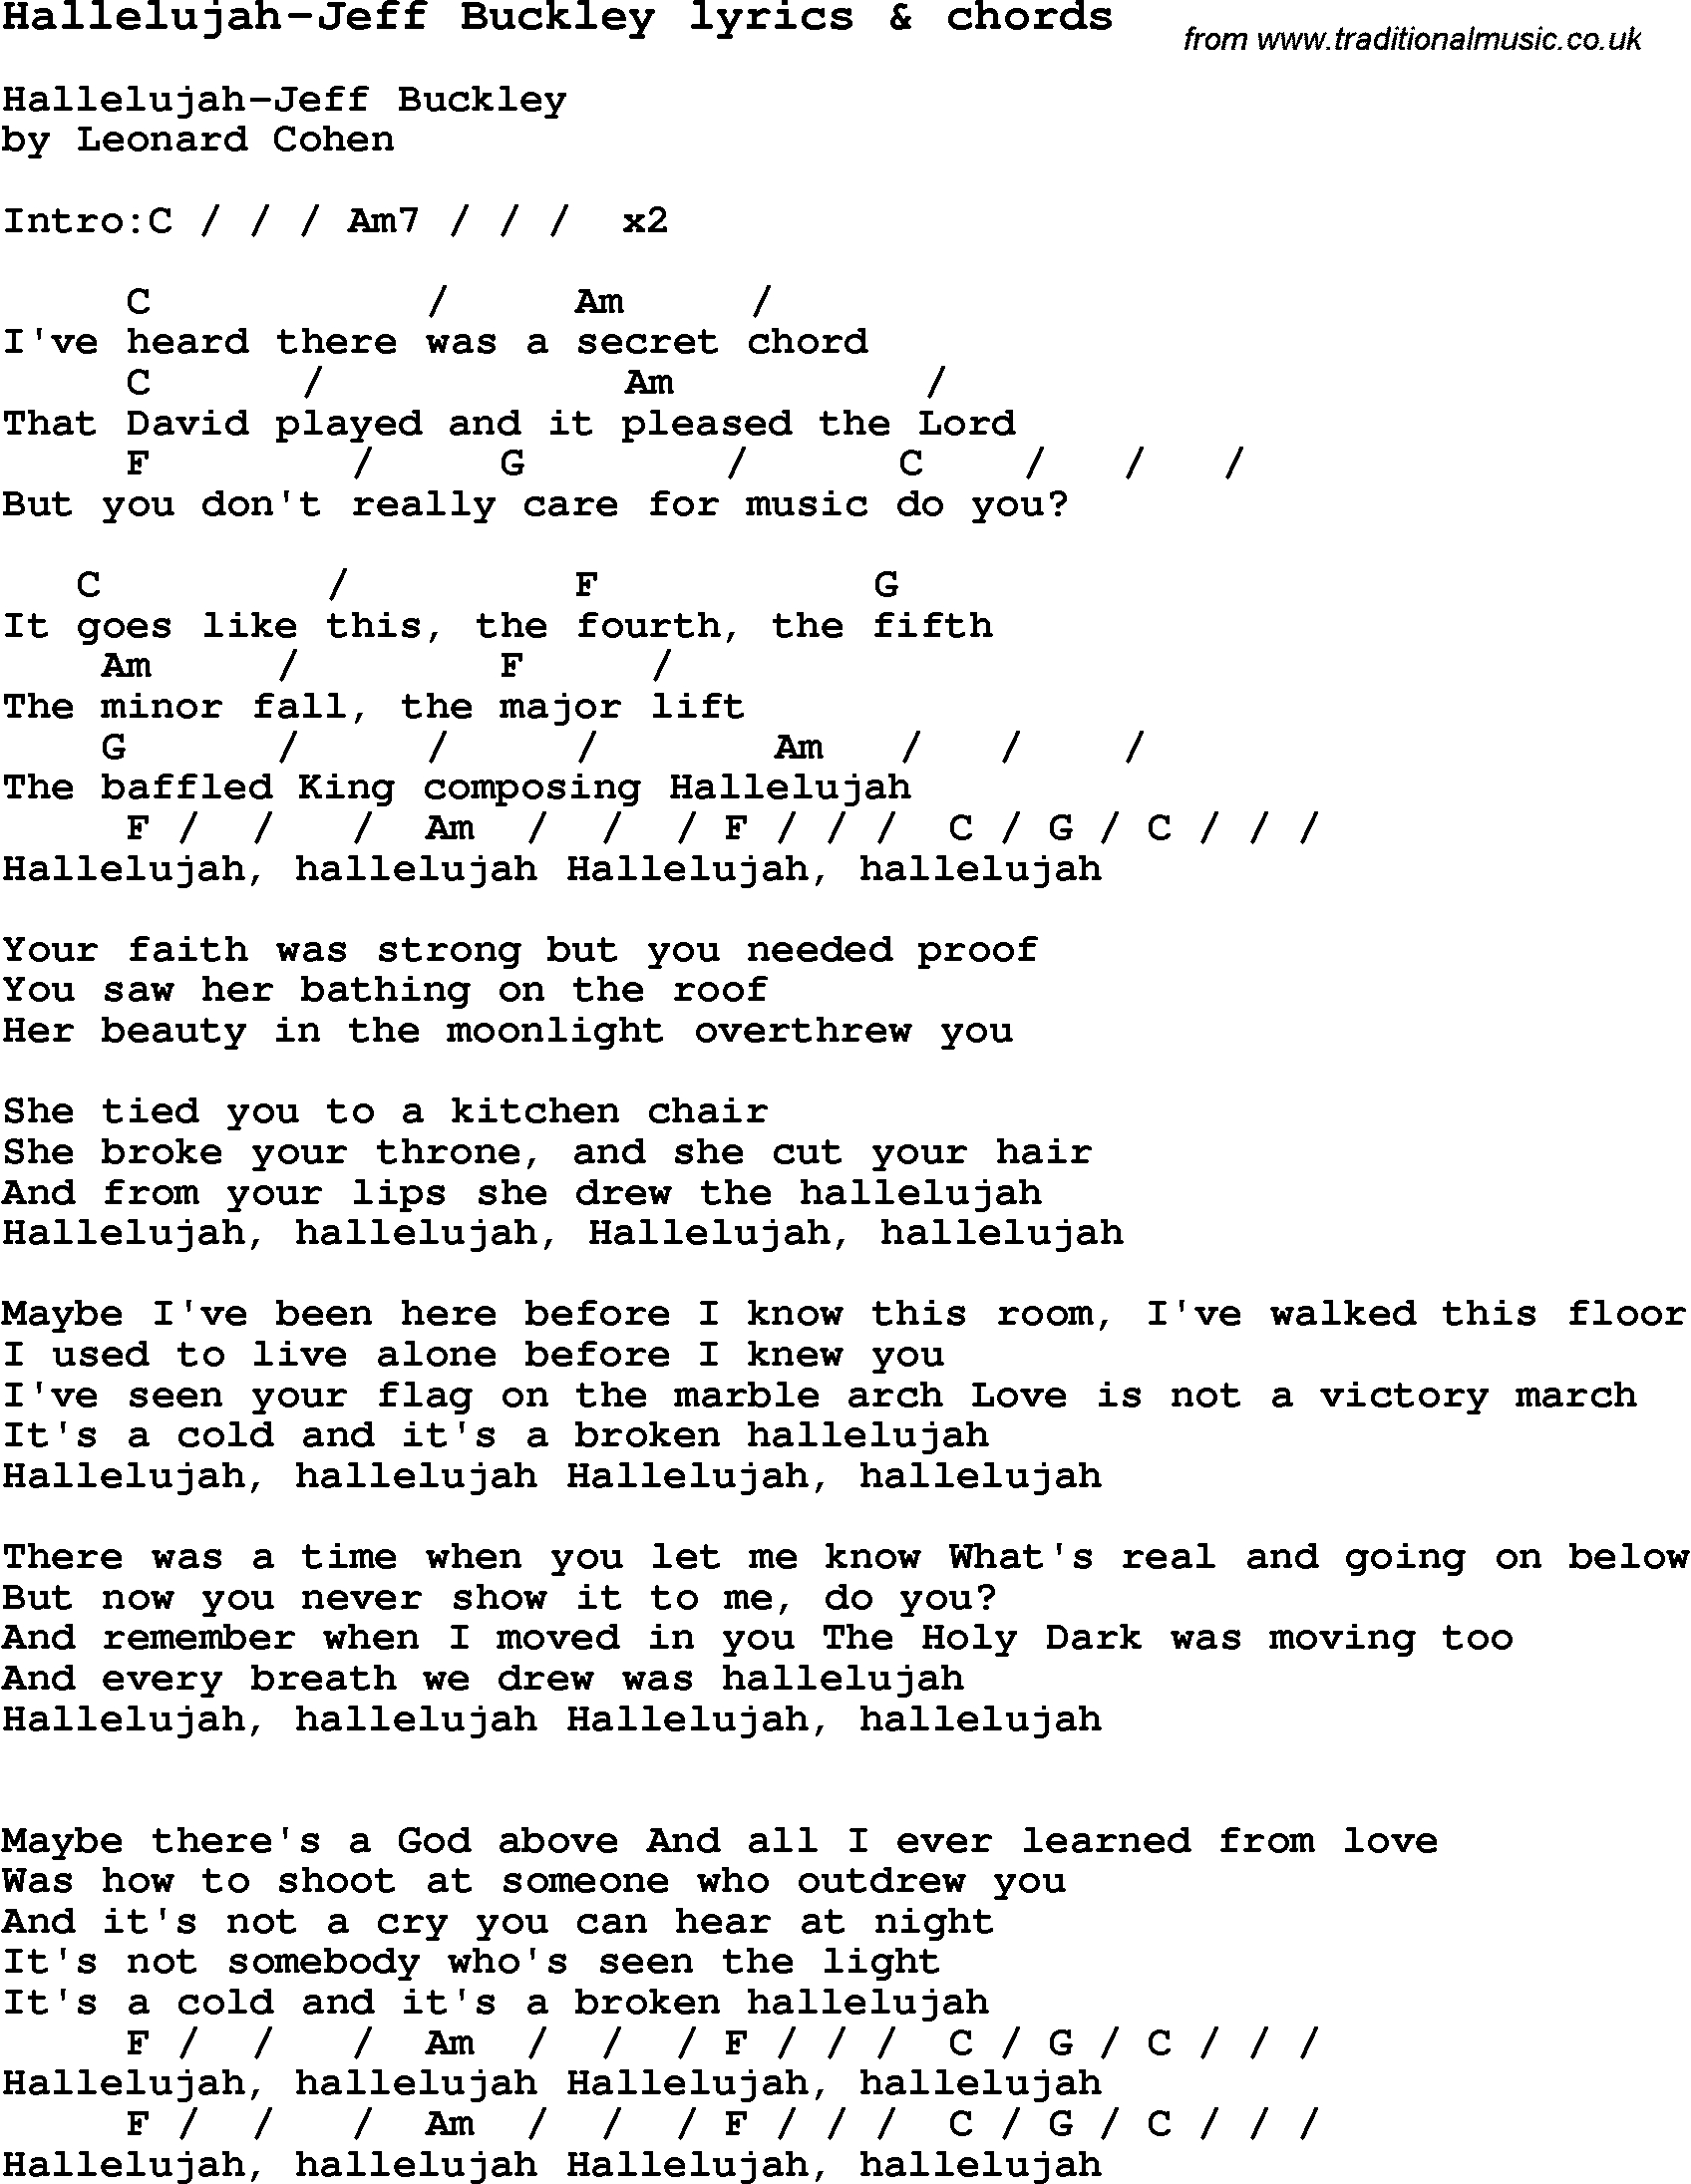 Hallelujah Ukulele Chords Love Song Lyrics Forhallelujah Jeff Buckley With Chords